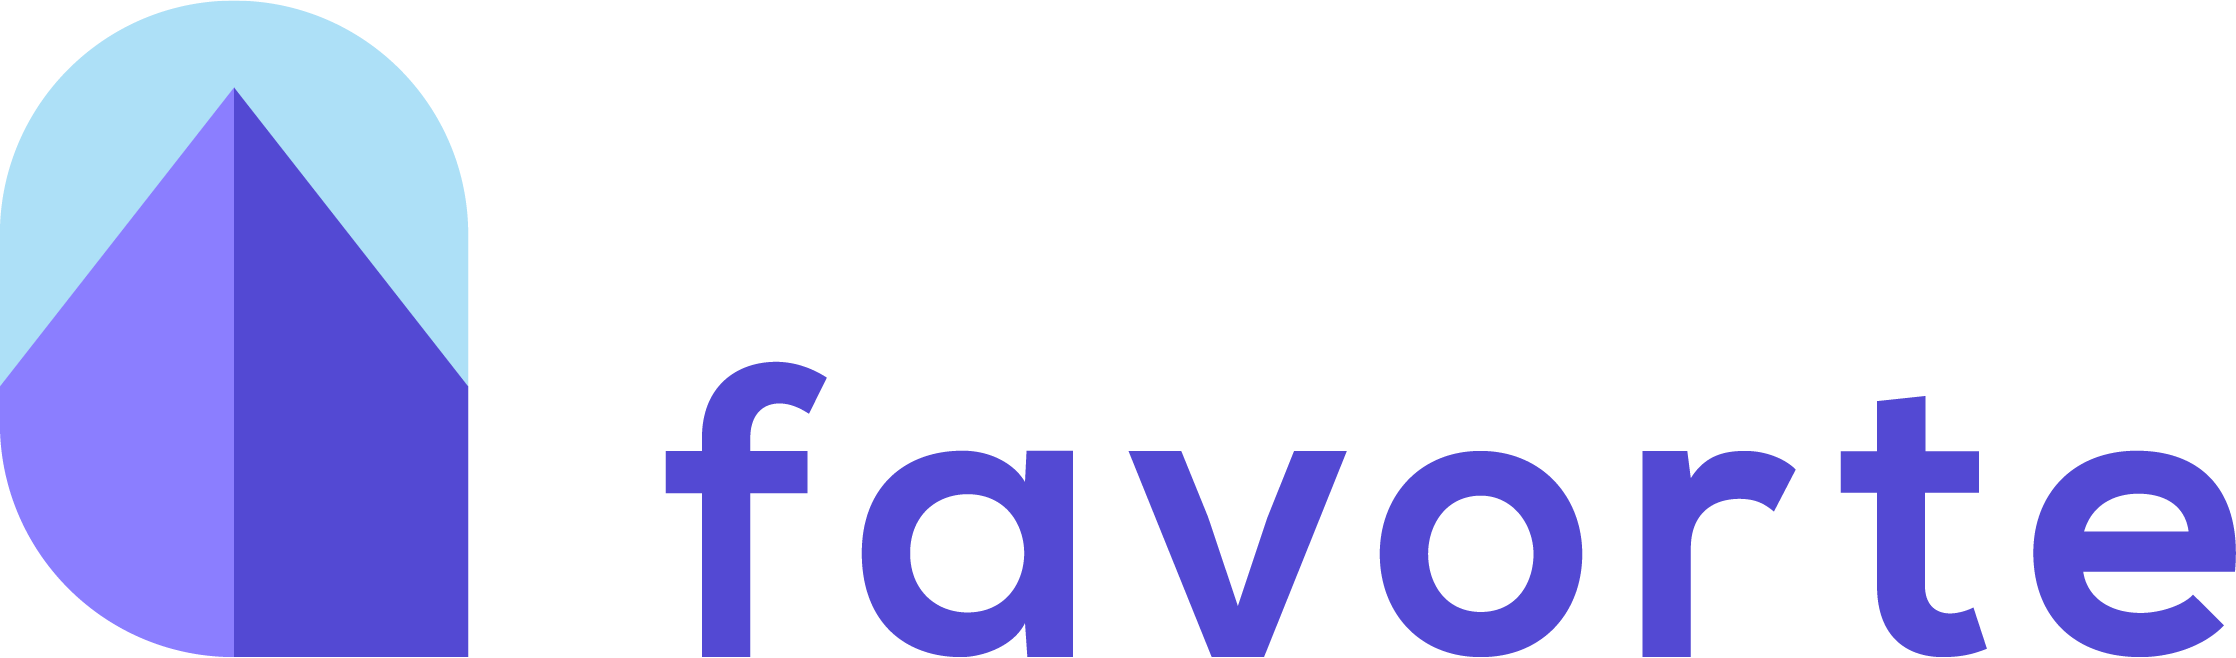 Favorte logo